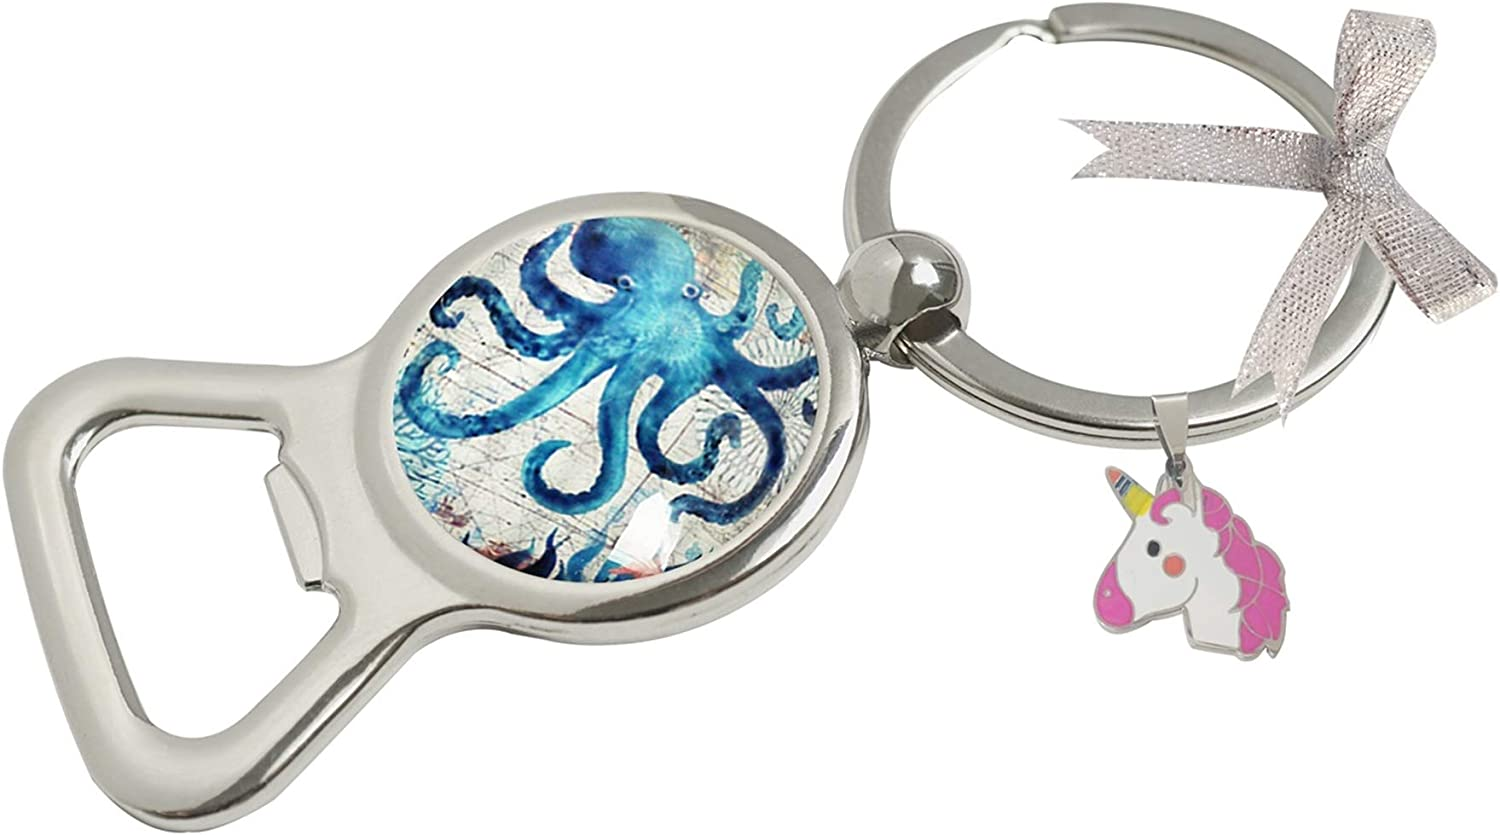 TopA Glass Image Custom Unique Bottle Opener Key Chain Key Ring Wedding Favors Party Reception Decoration (Octopus)